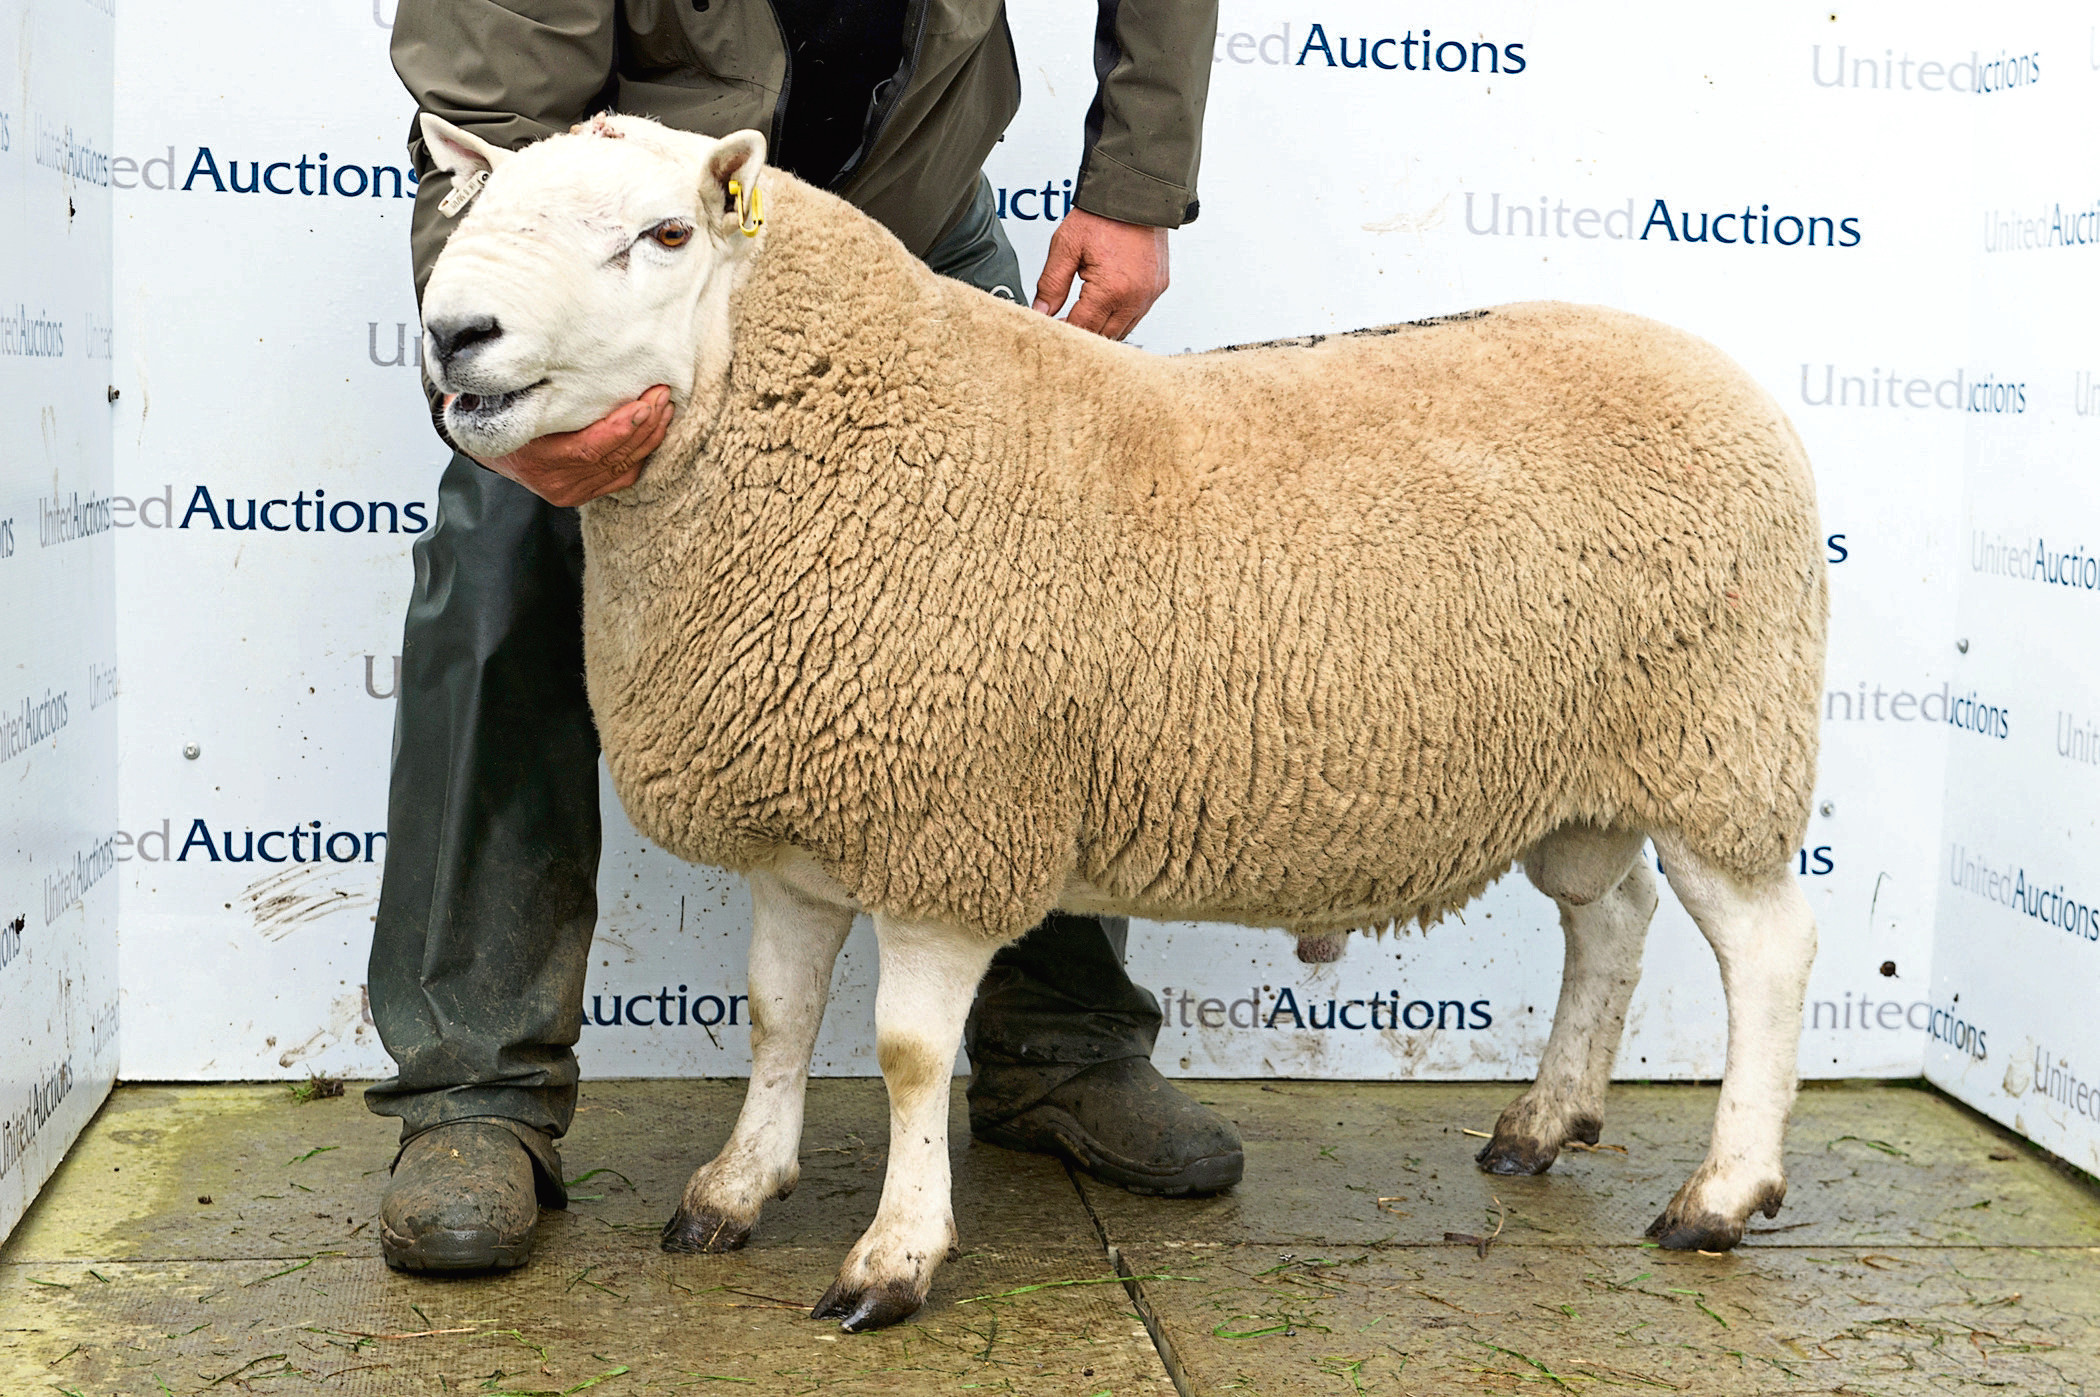 The £14,000 Suisgill tup.